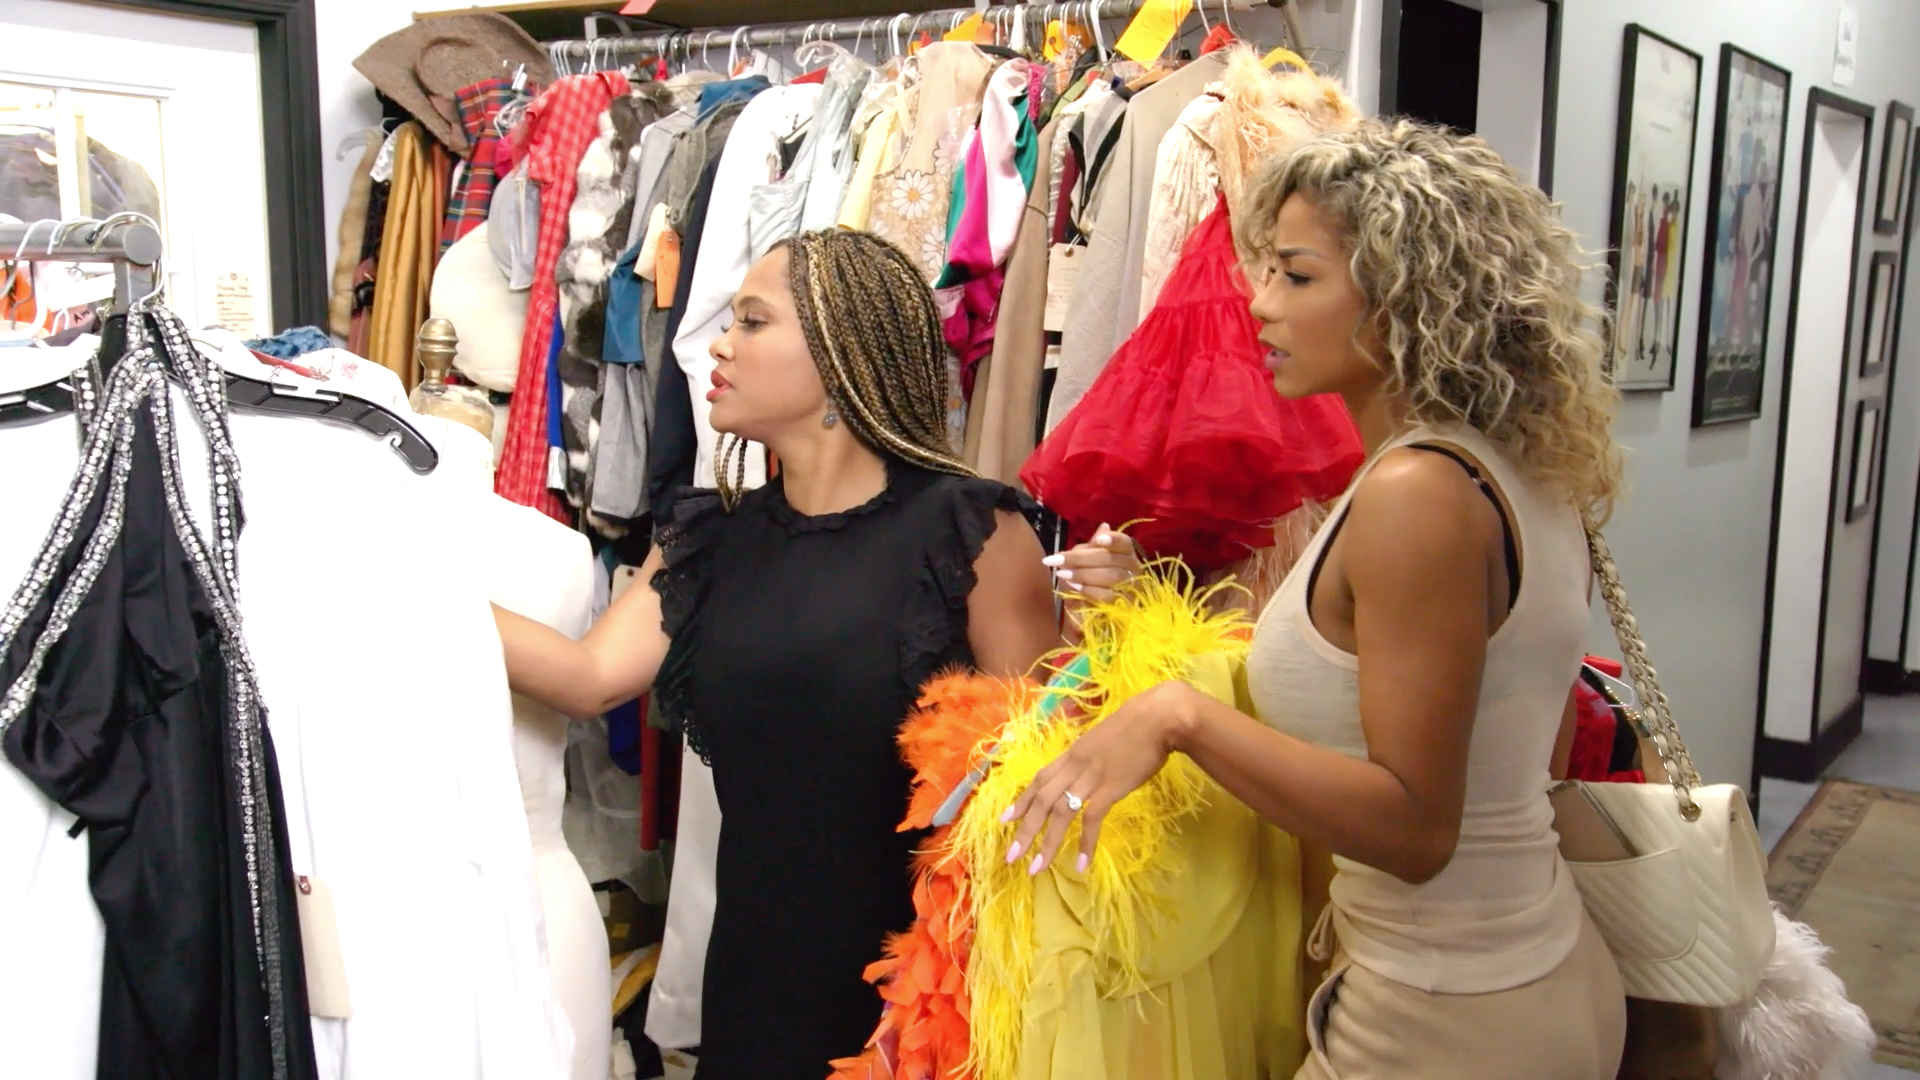 Jazmin Johnson and Shanique Drummond Go Shopping For Halloween Costumes